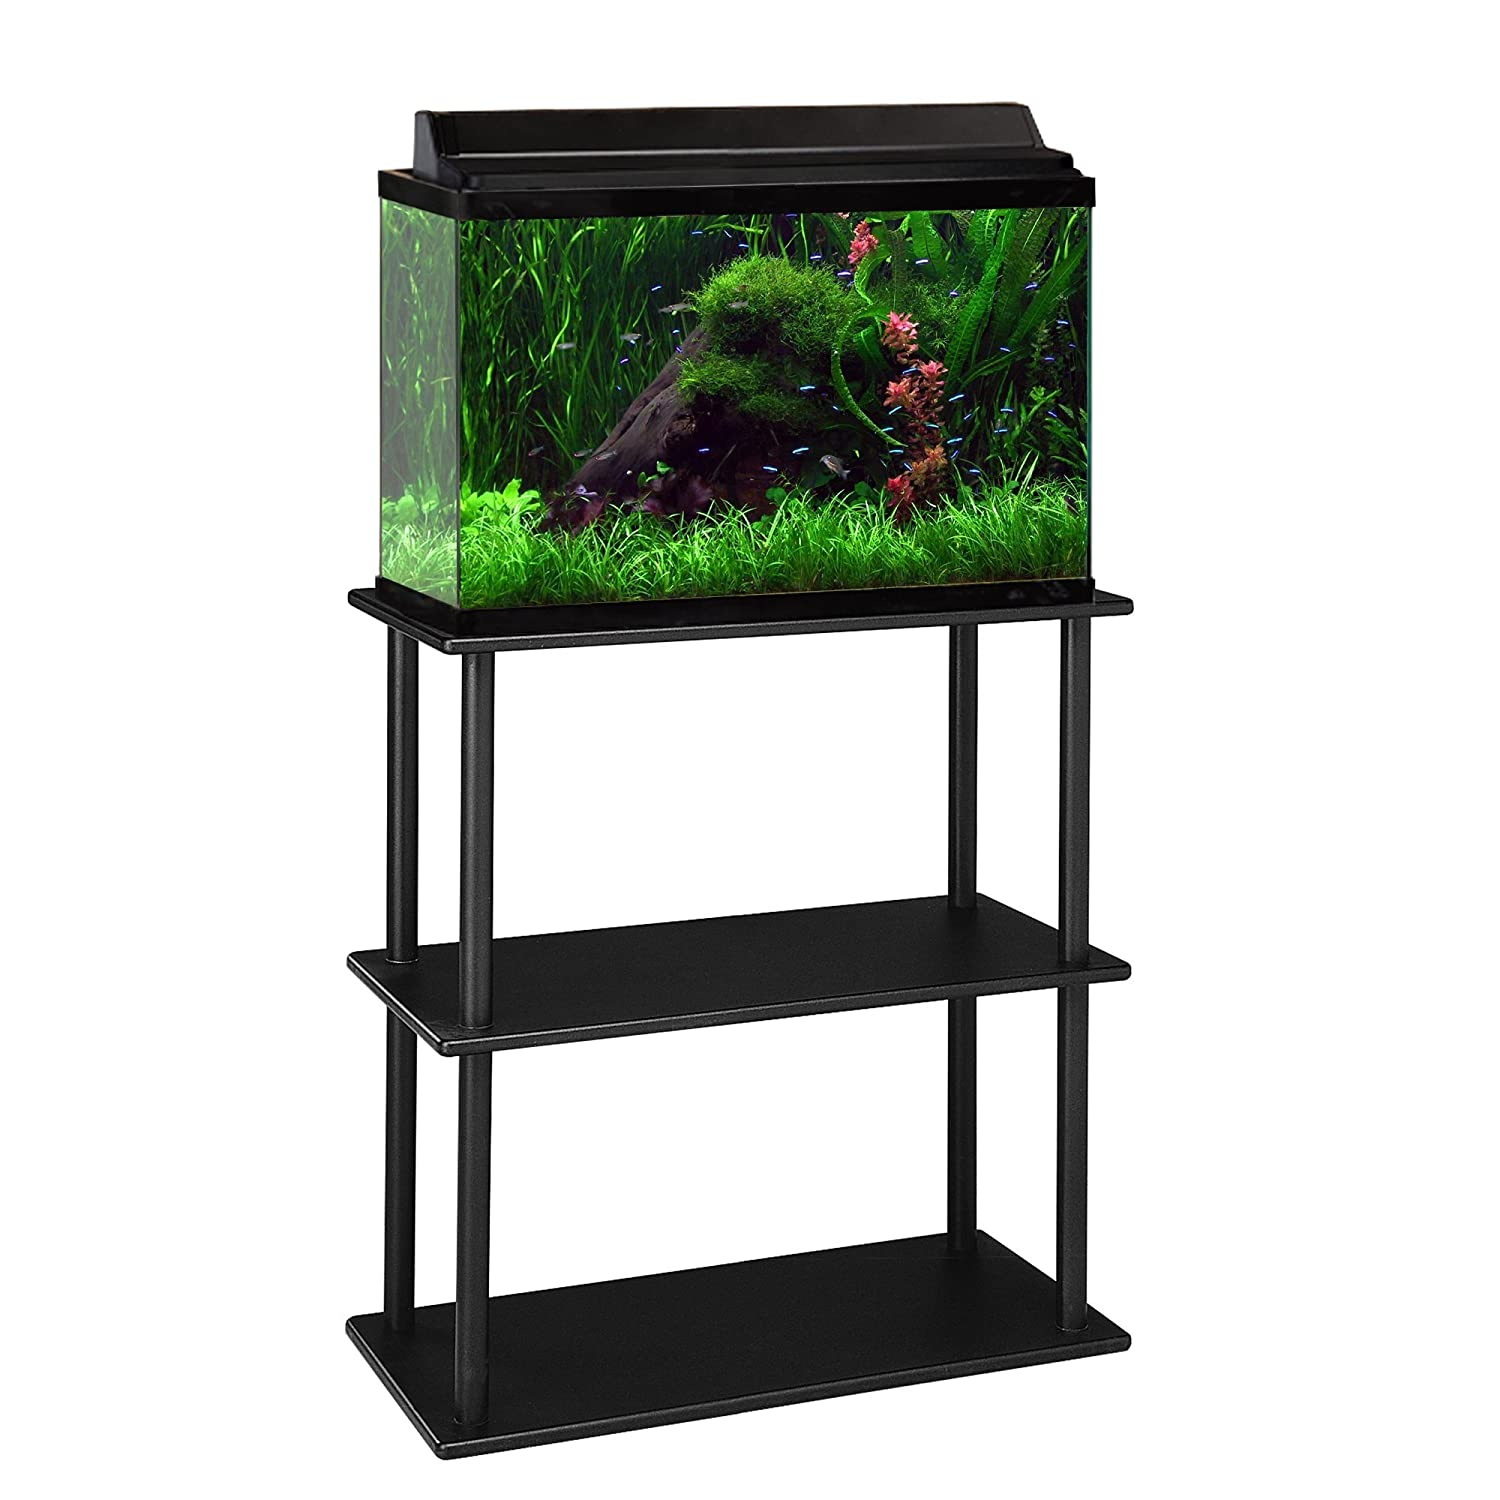 Amazon Aquatic Fundamentals 10 20 Gallon Aquarium Stand with